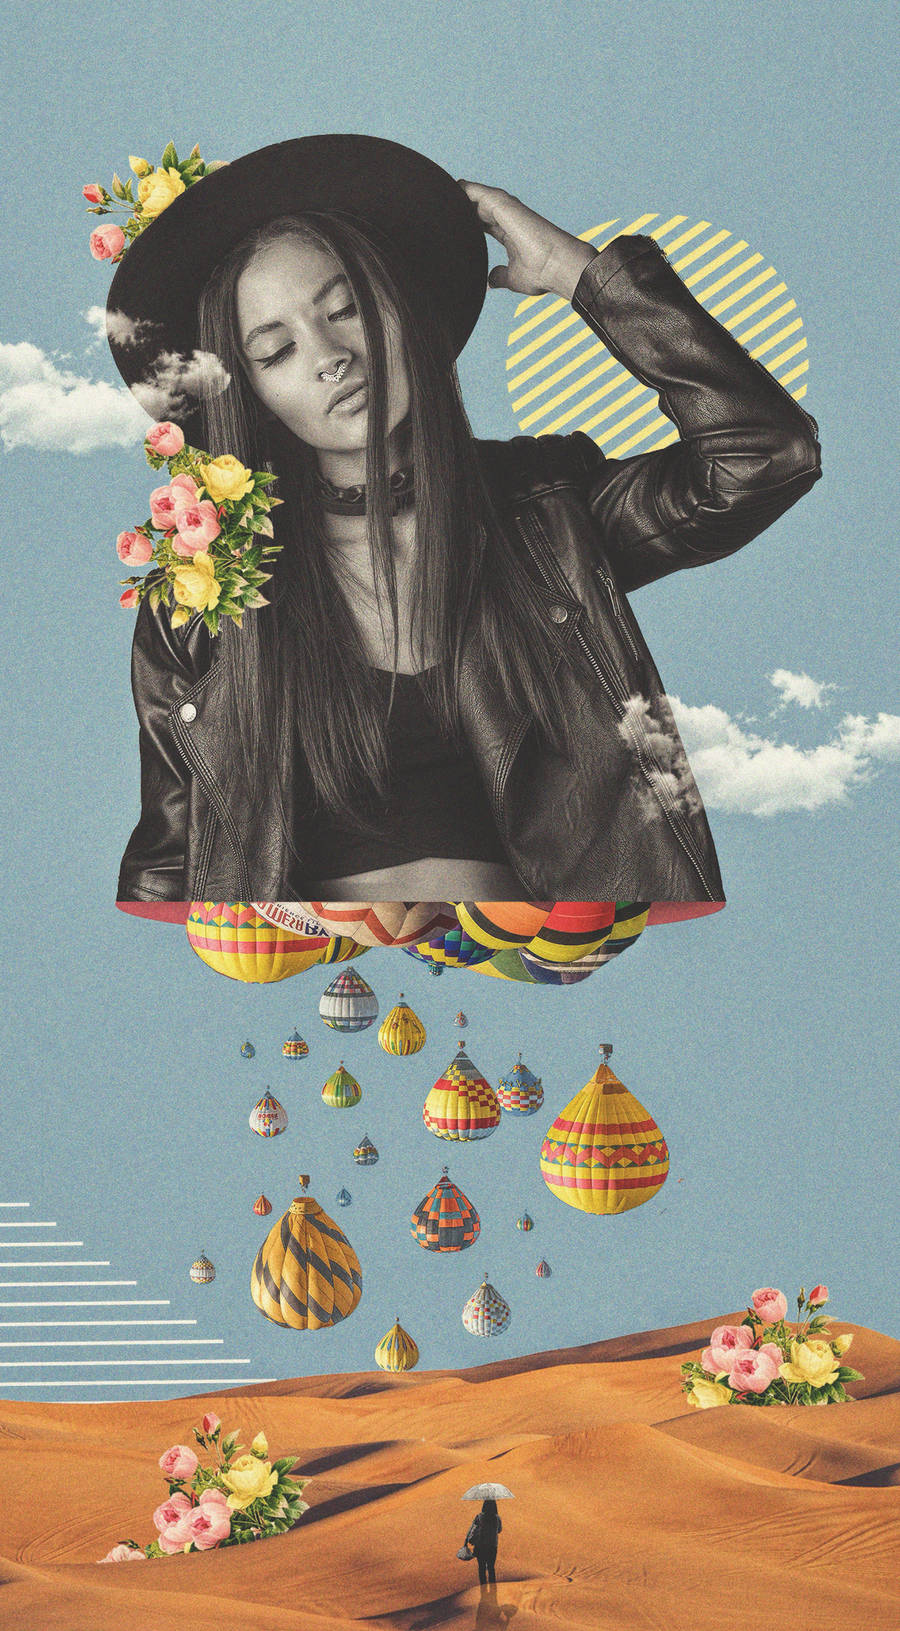 Art of Collage by Abdo Assan